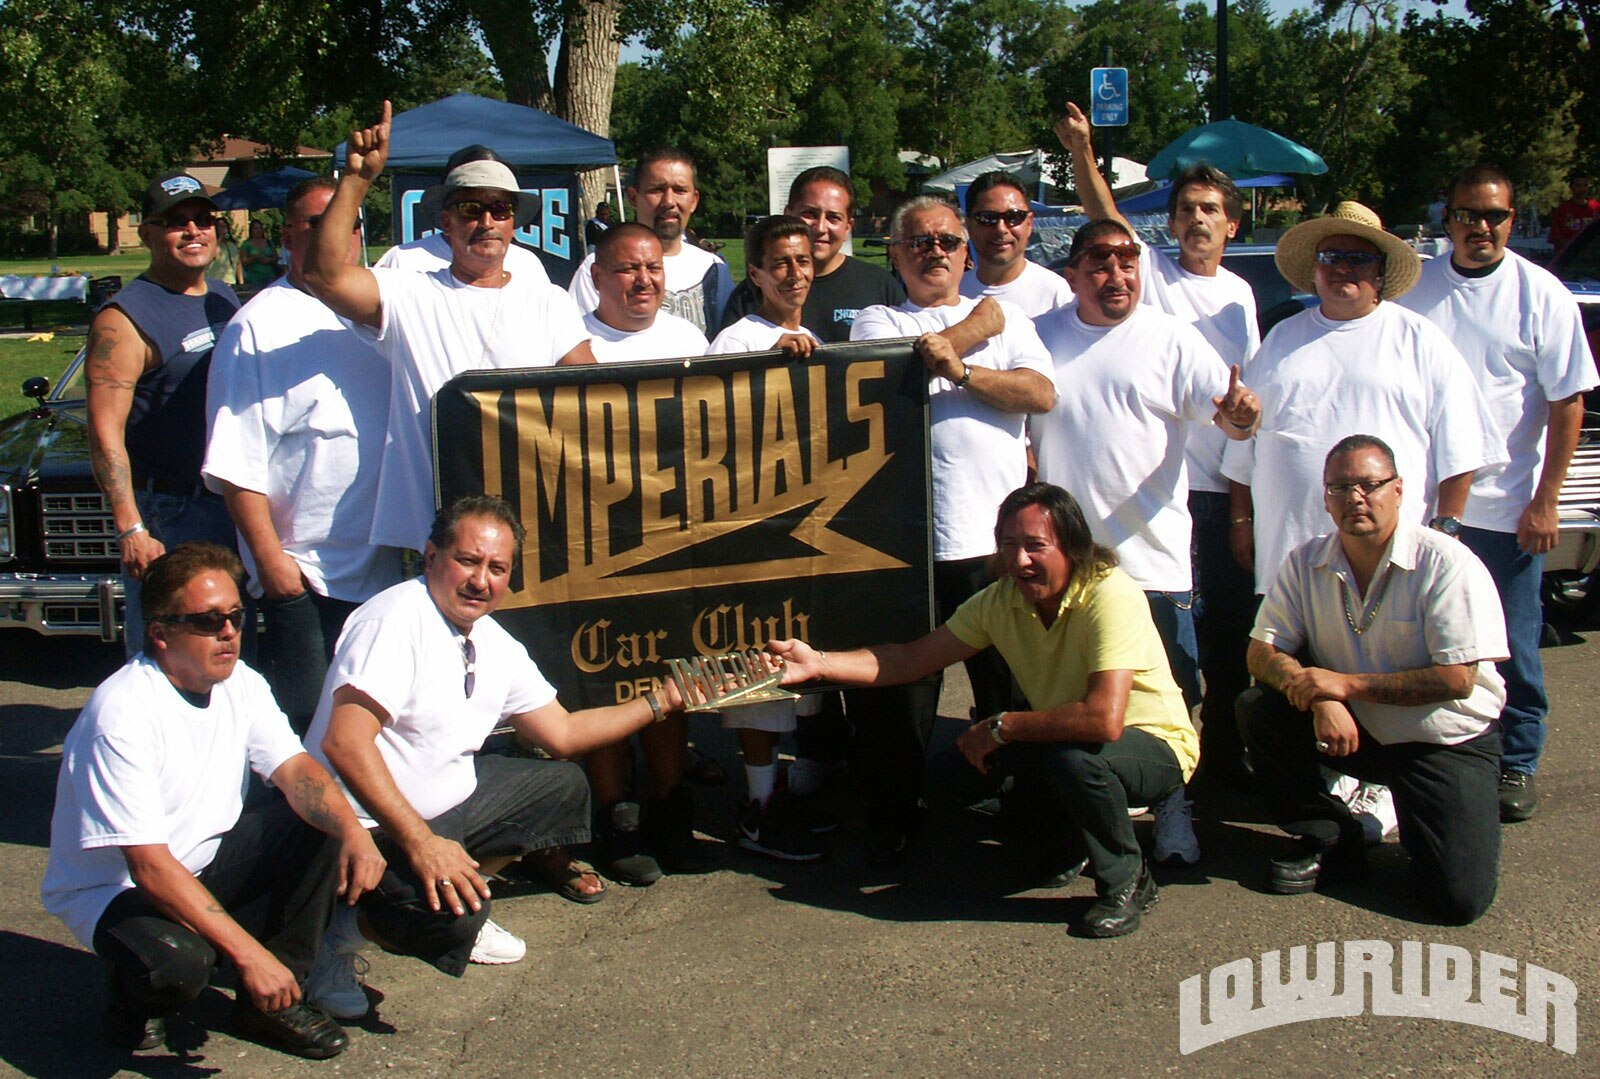 1204-lrmp-22-o-imperials-car-club-denver-20th-anniversary-BBQ-imperials-members1